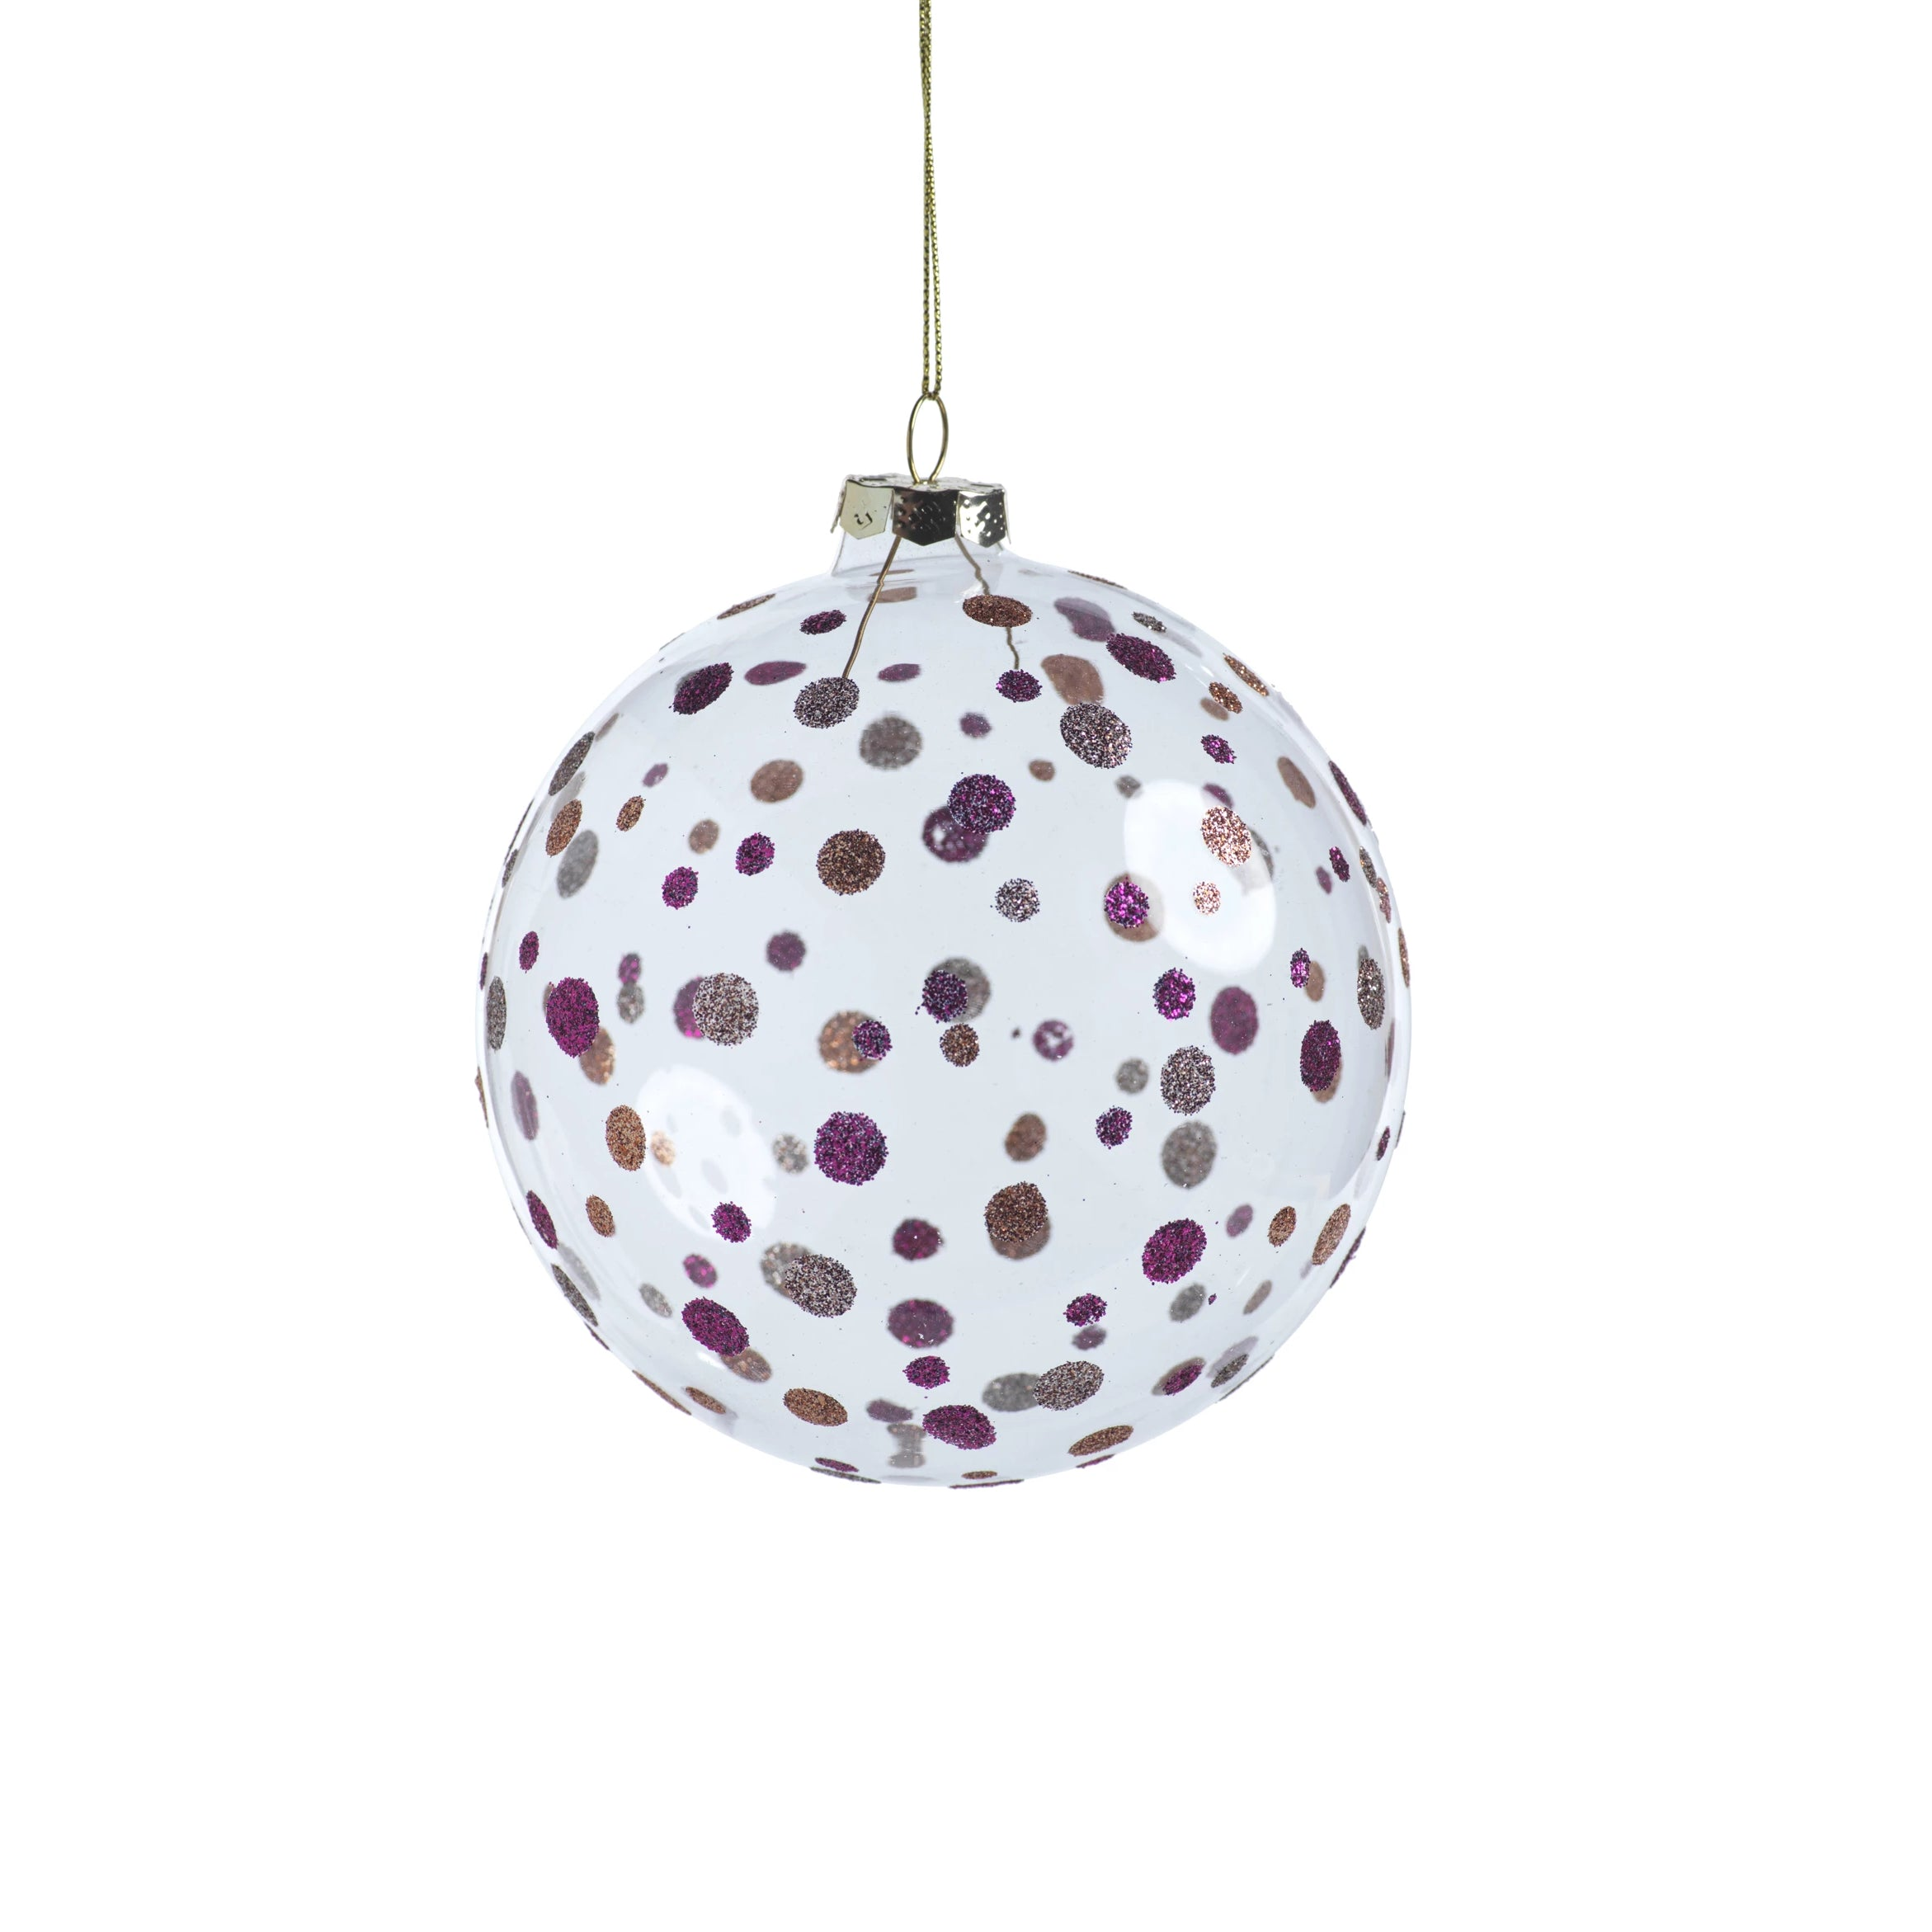 Clear Ball Ornament w/Glitter Dots - Purple - CARLYLE AVENUE